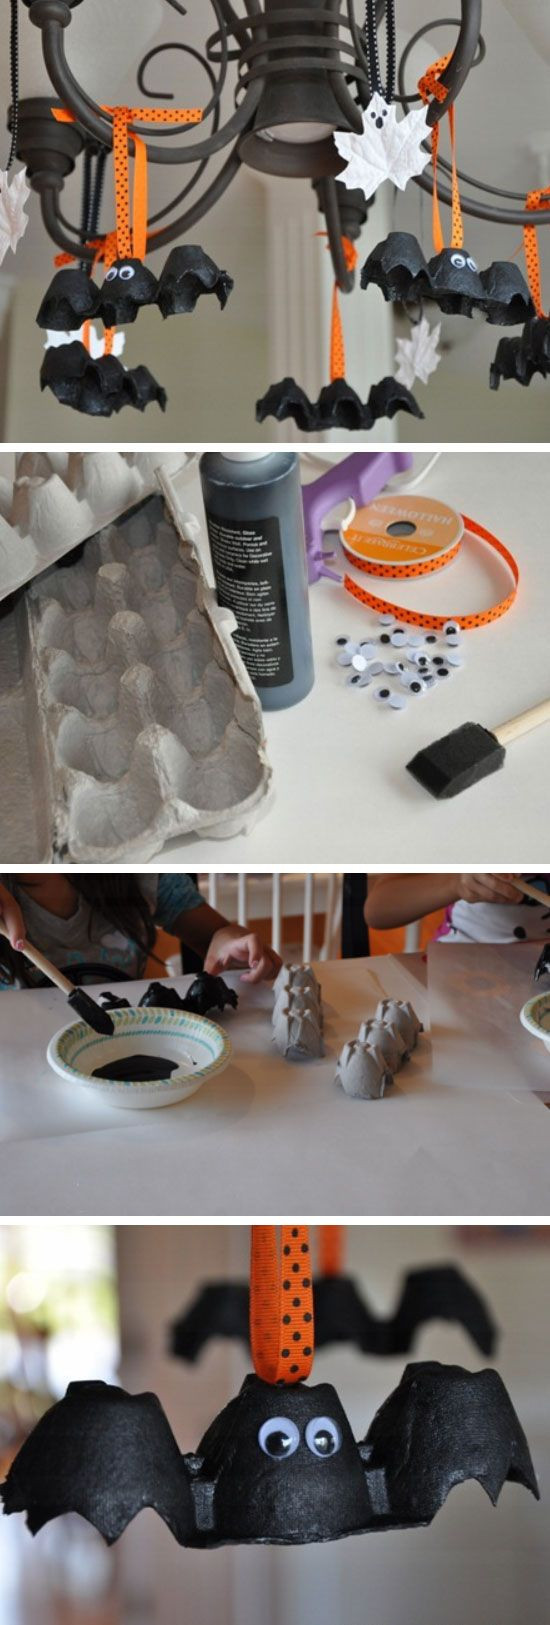 Diy Halloween Party Decoration Ideas  40 Homemade Halloween Decorations Kitchen Fun With My